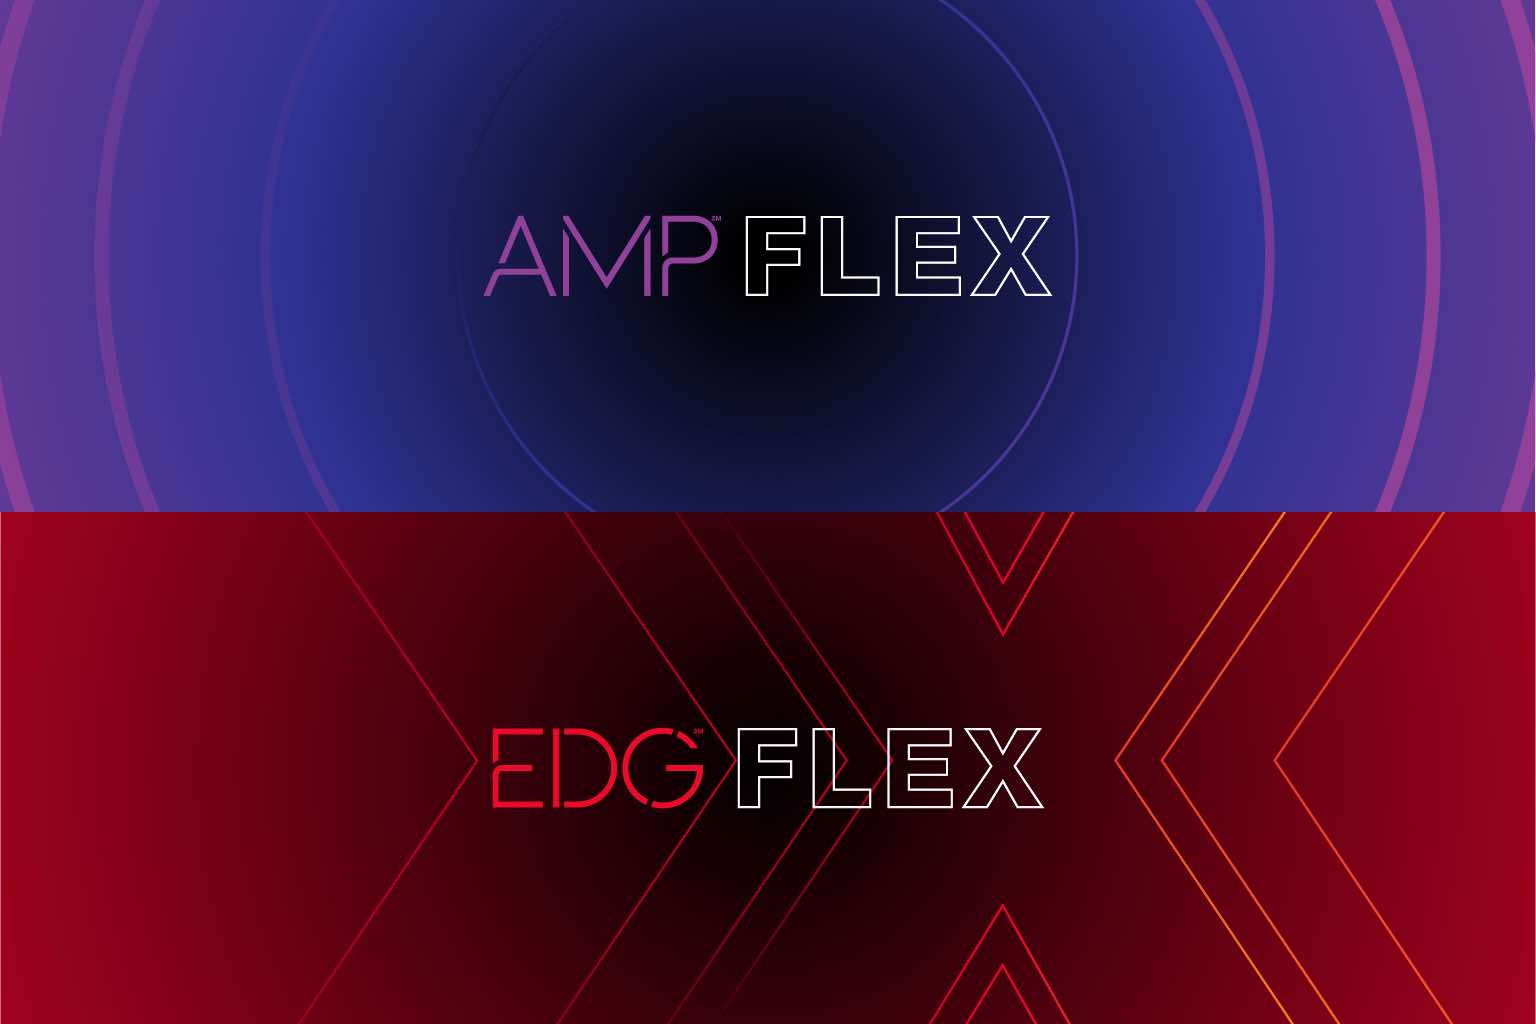 AMP Sculpt and EDG Sculpt type lockups and graphics